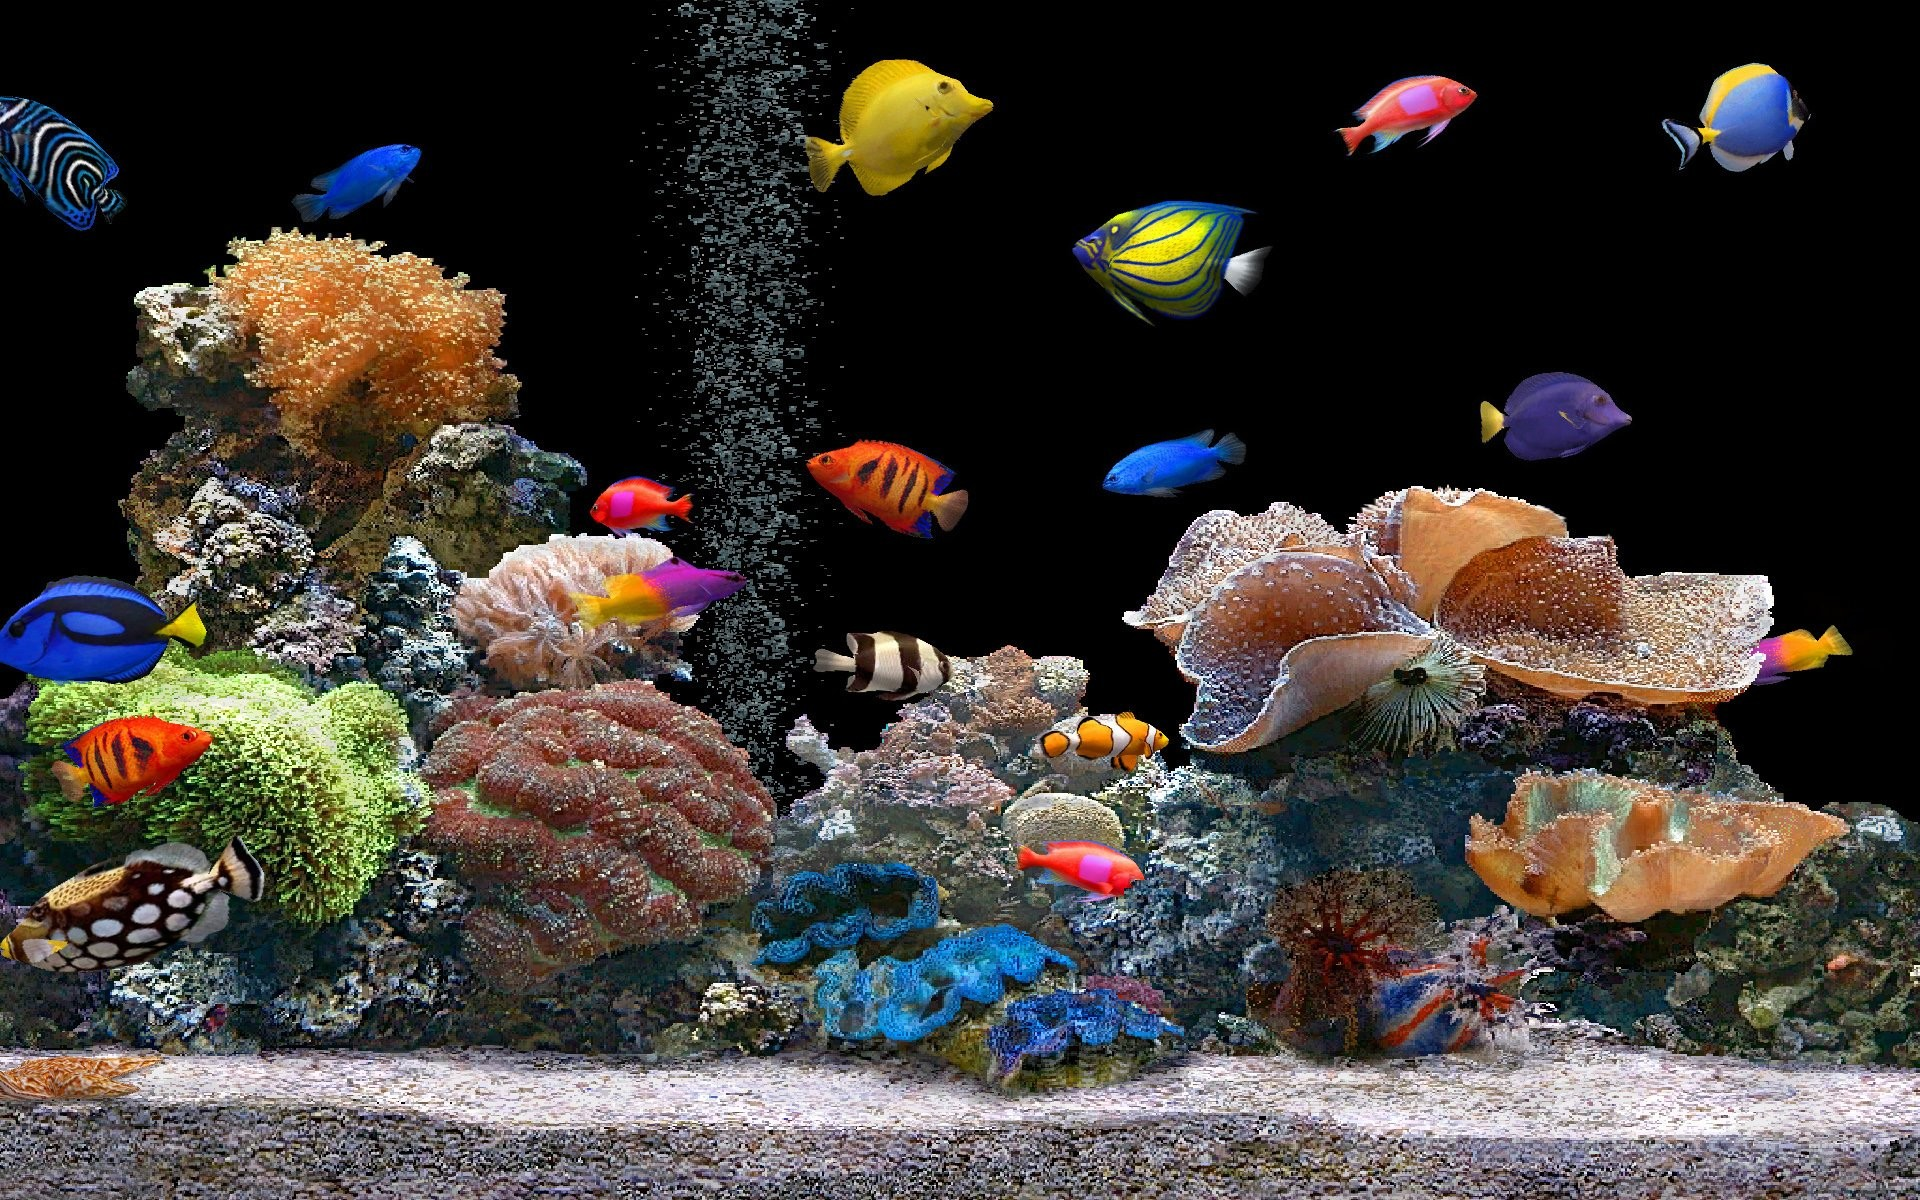 1920x1200 Aquarium Colorful Screensavers wallpapers HD free - 138274